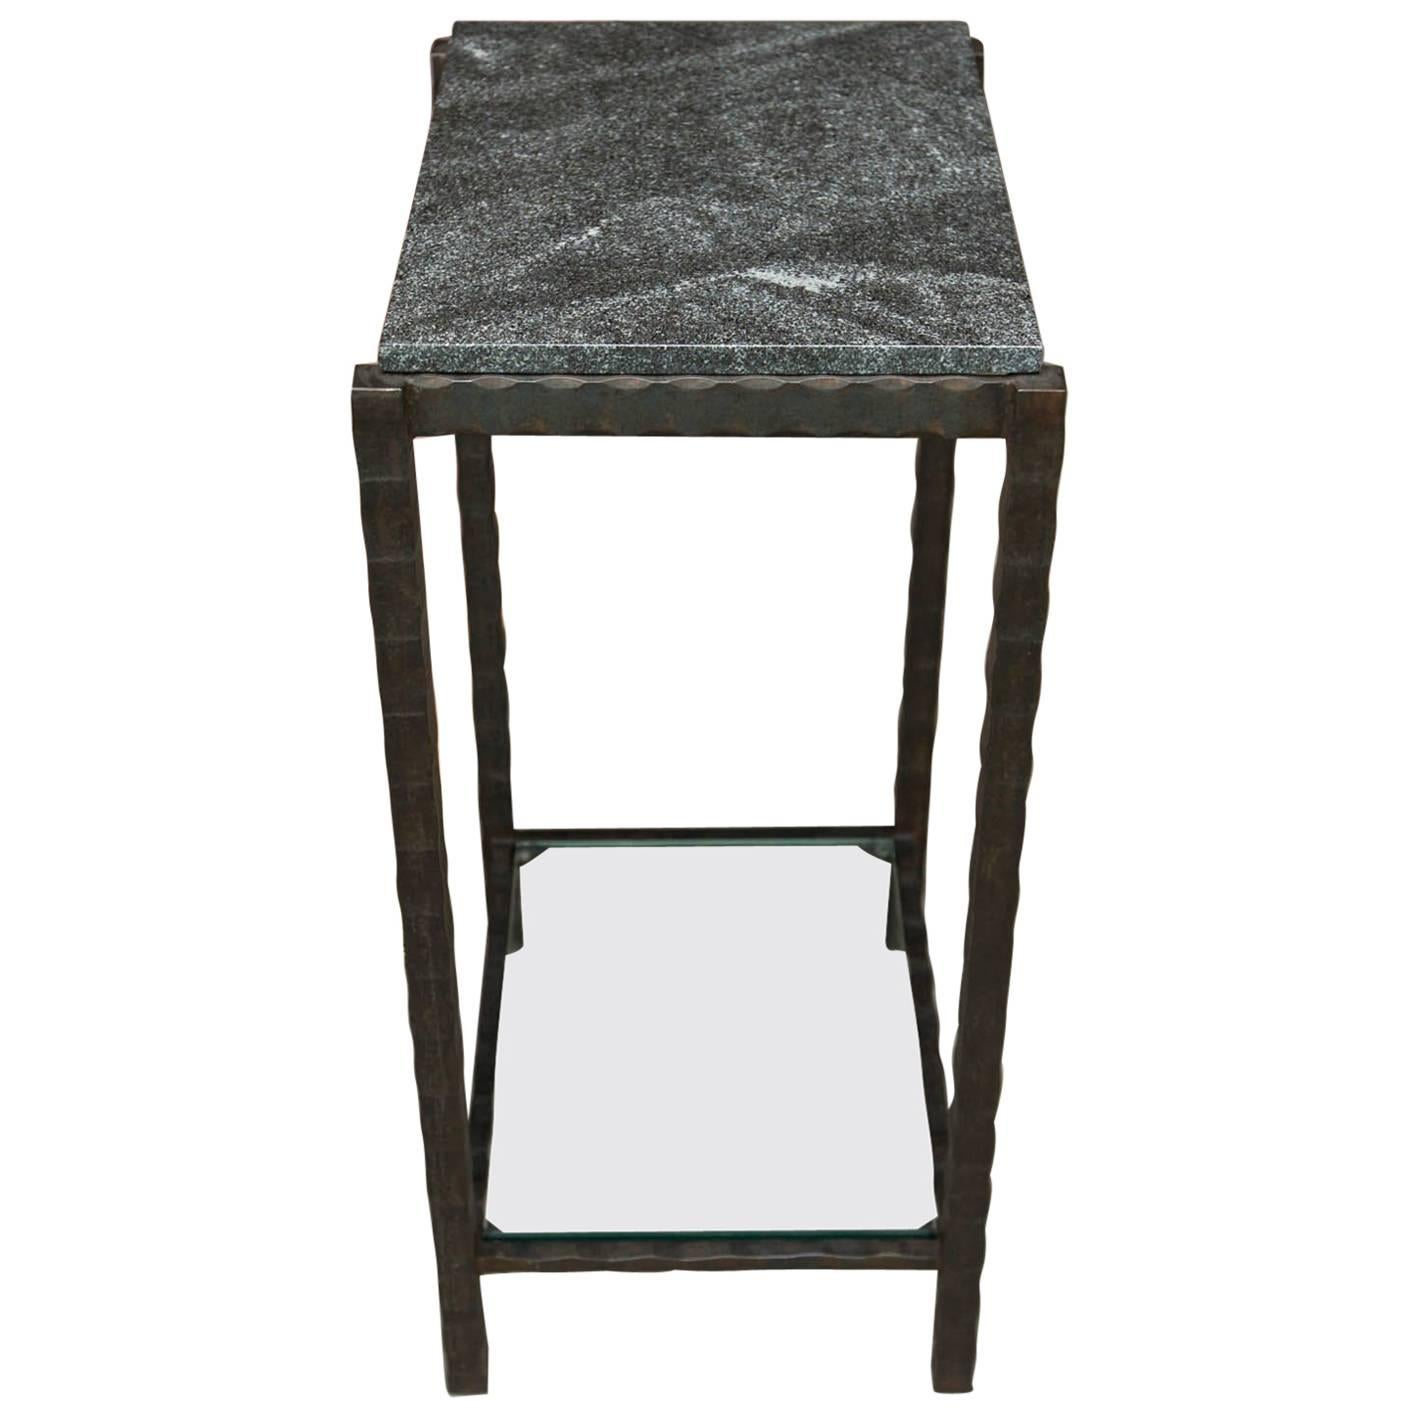 Hand Forged Steel and Granite Side Table by Gregory Clark